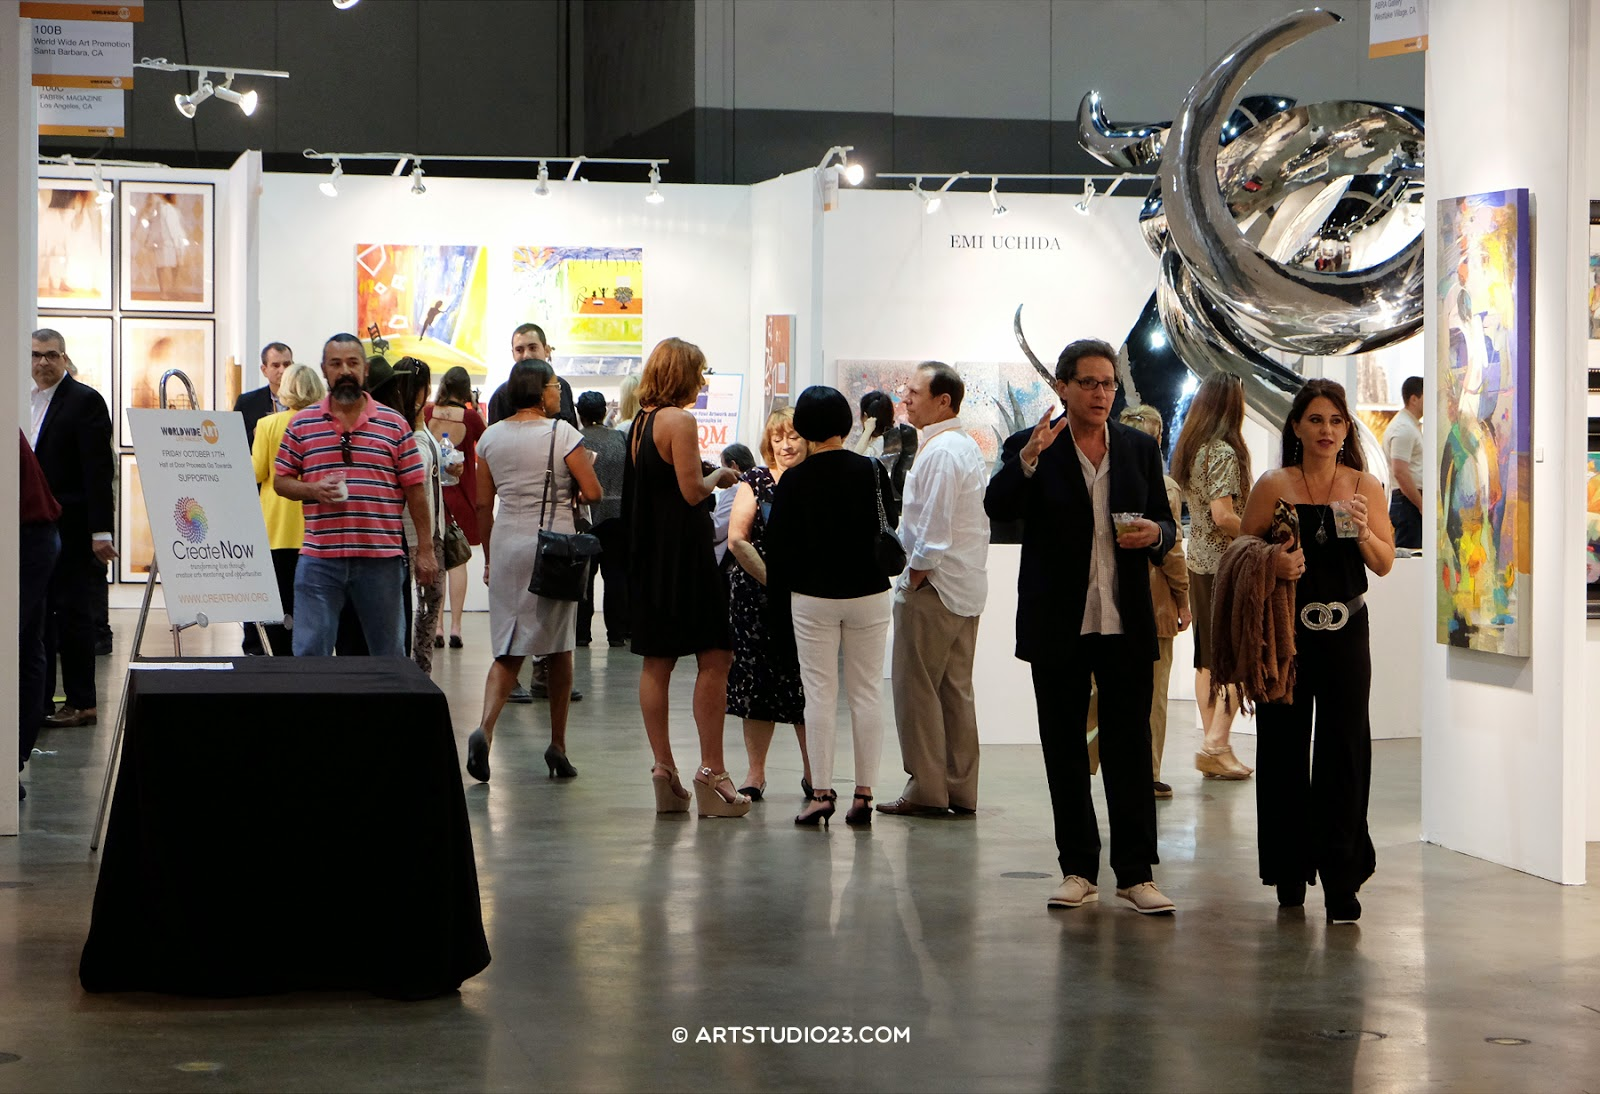 Art show in Los Angeles, Convention Center Down Town LA